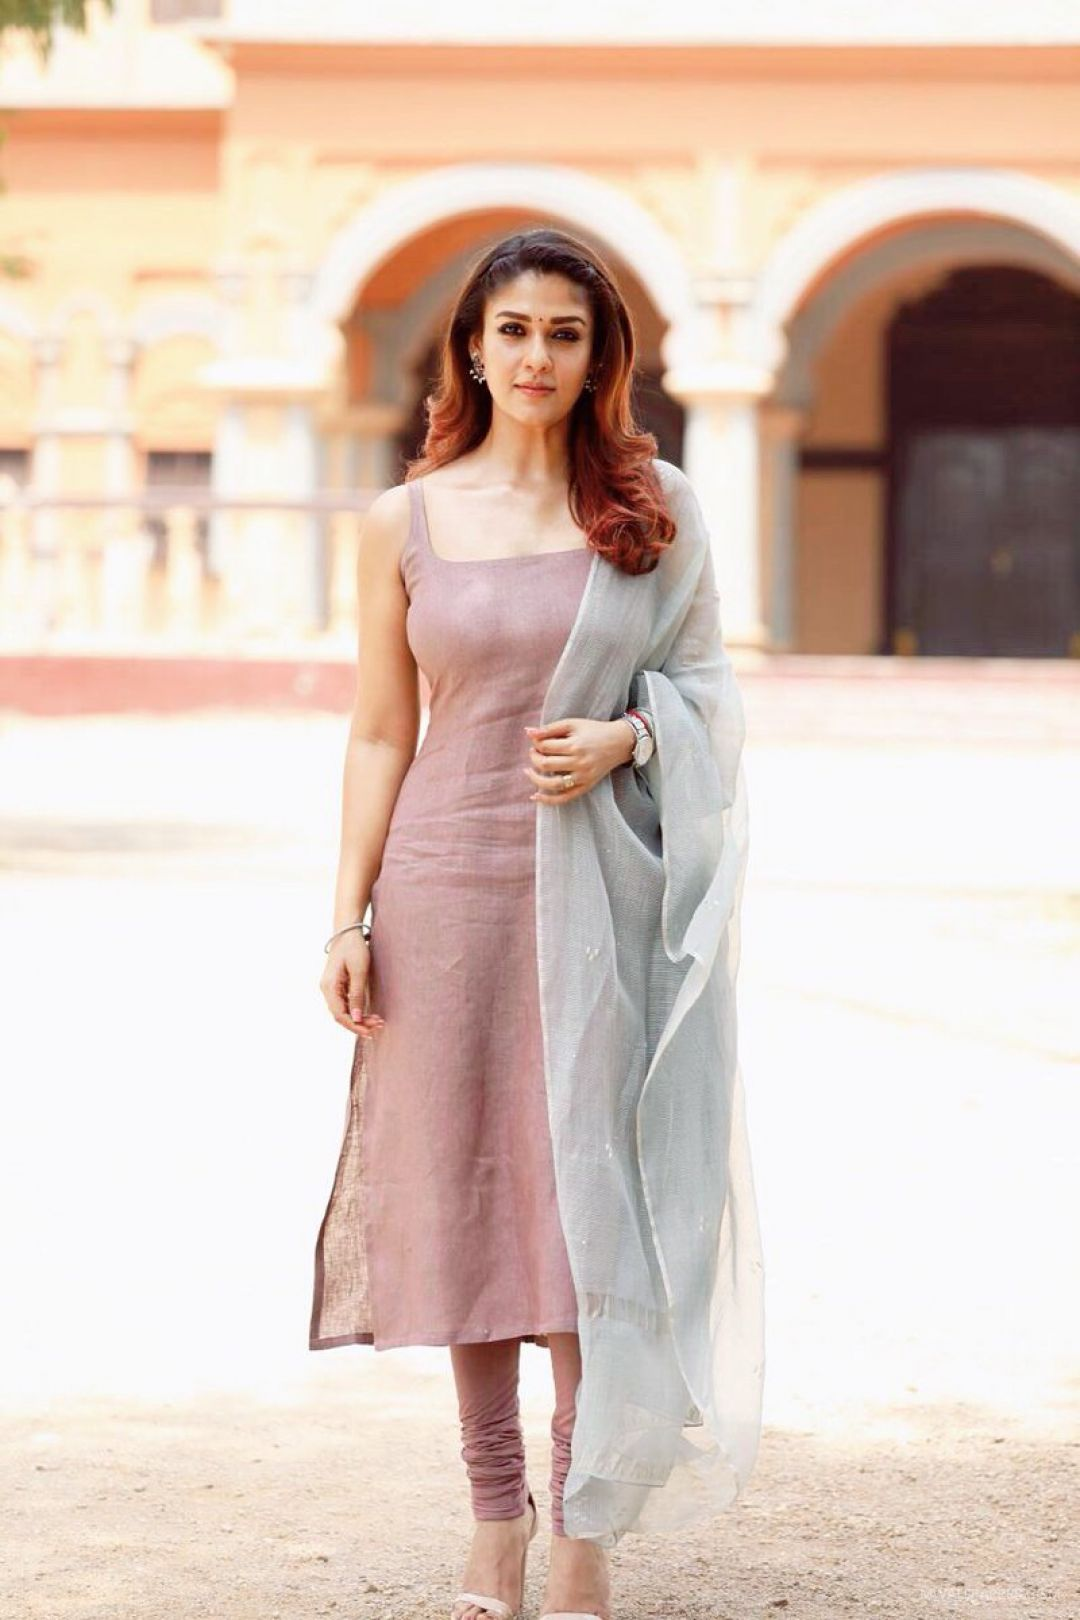 Nayanthara HD Wallpapers (Desktop Background / Android / iPhone) (1080p, 4k) (44082) - Nayanthara